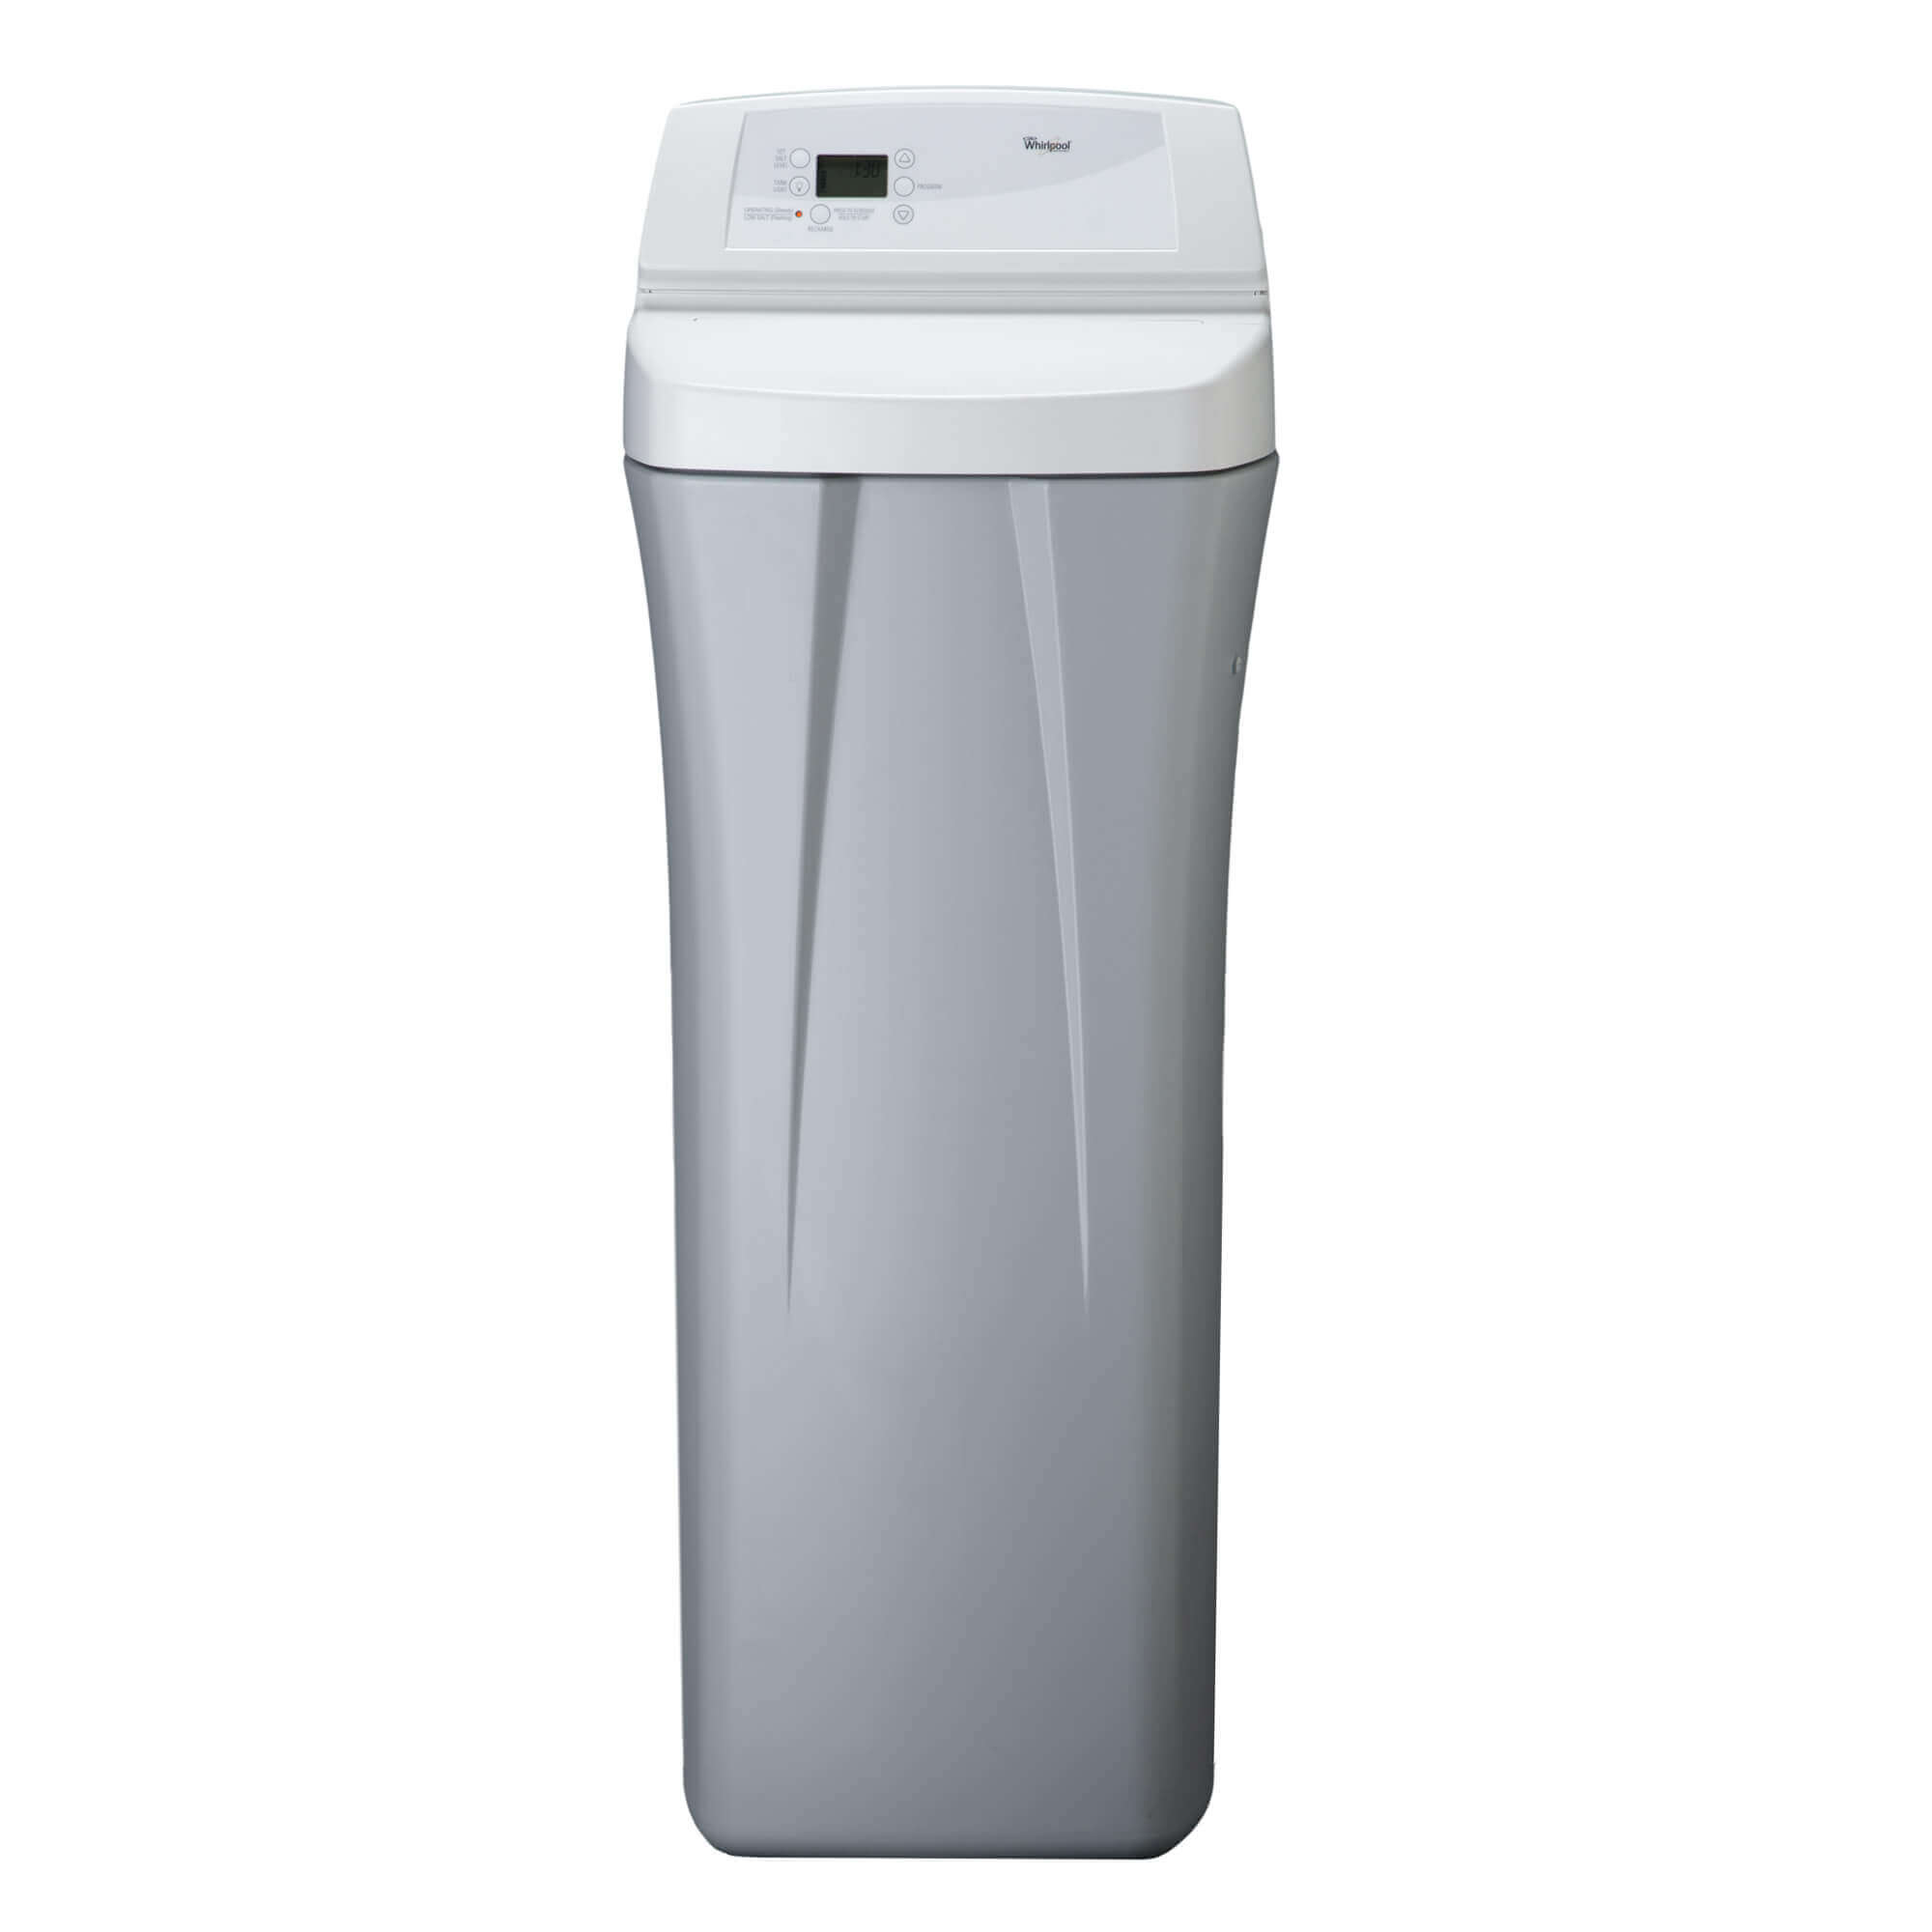 40 000 grain capacity water softener whes40 whirlpool - Whirlpool problems ...